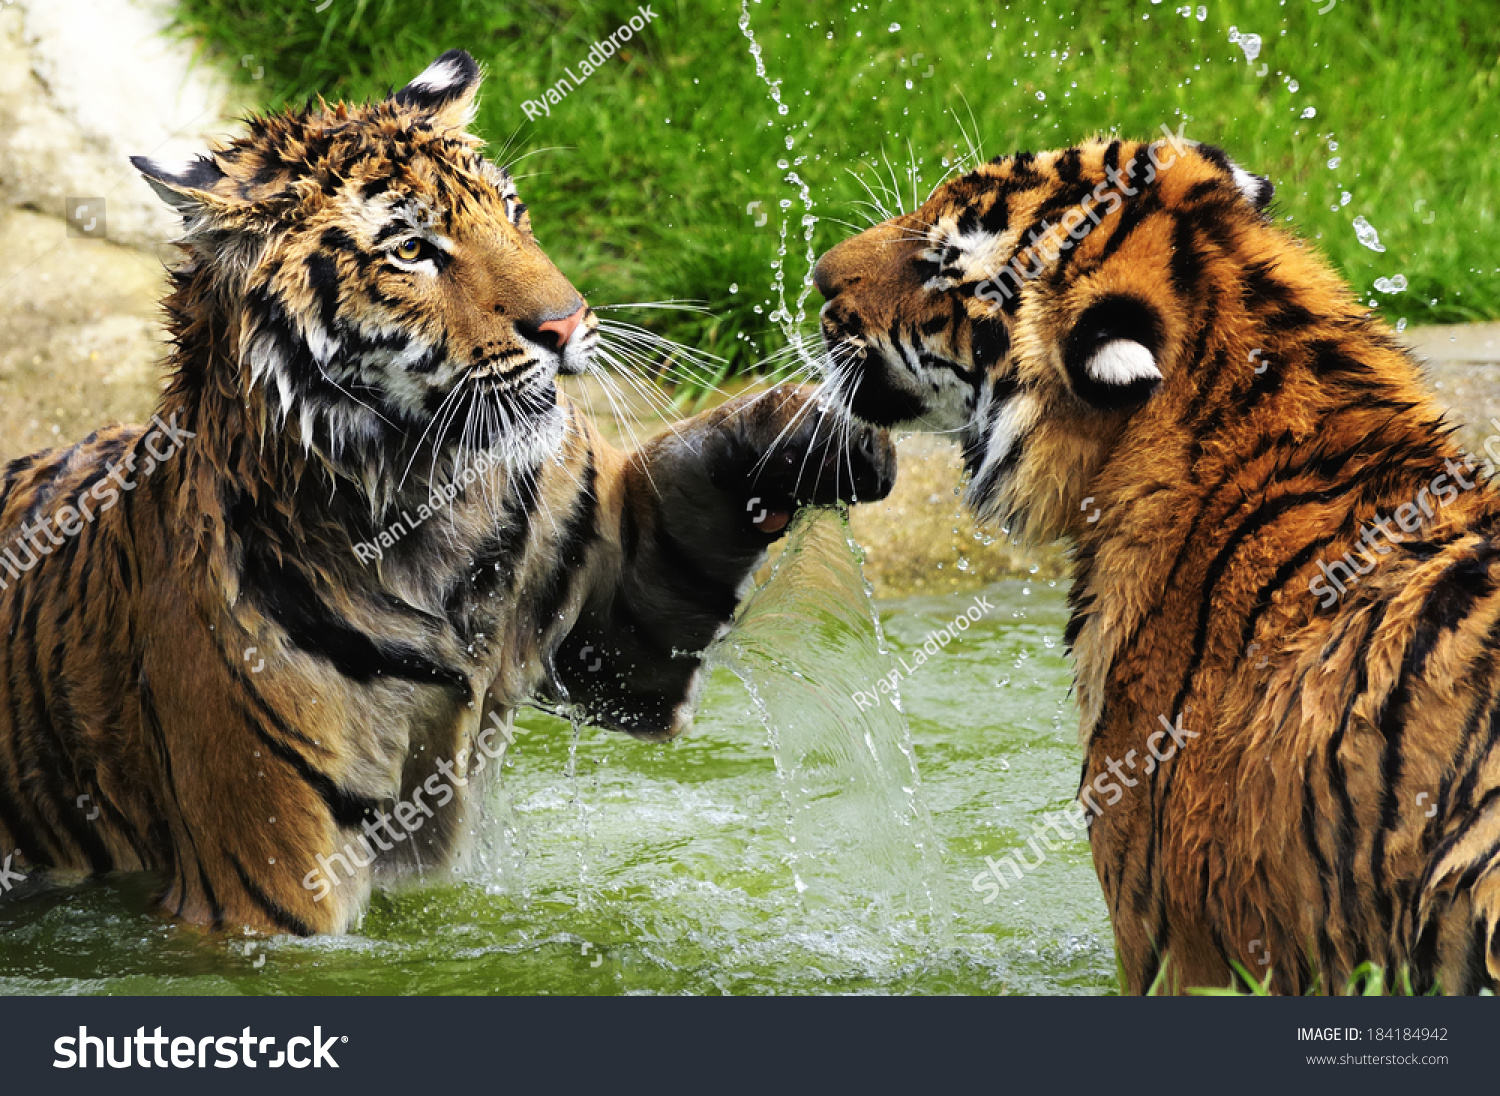 tiger uppercut tigers play fighting pool stock photo & image